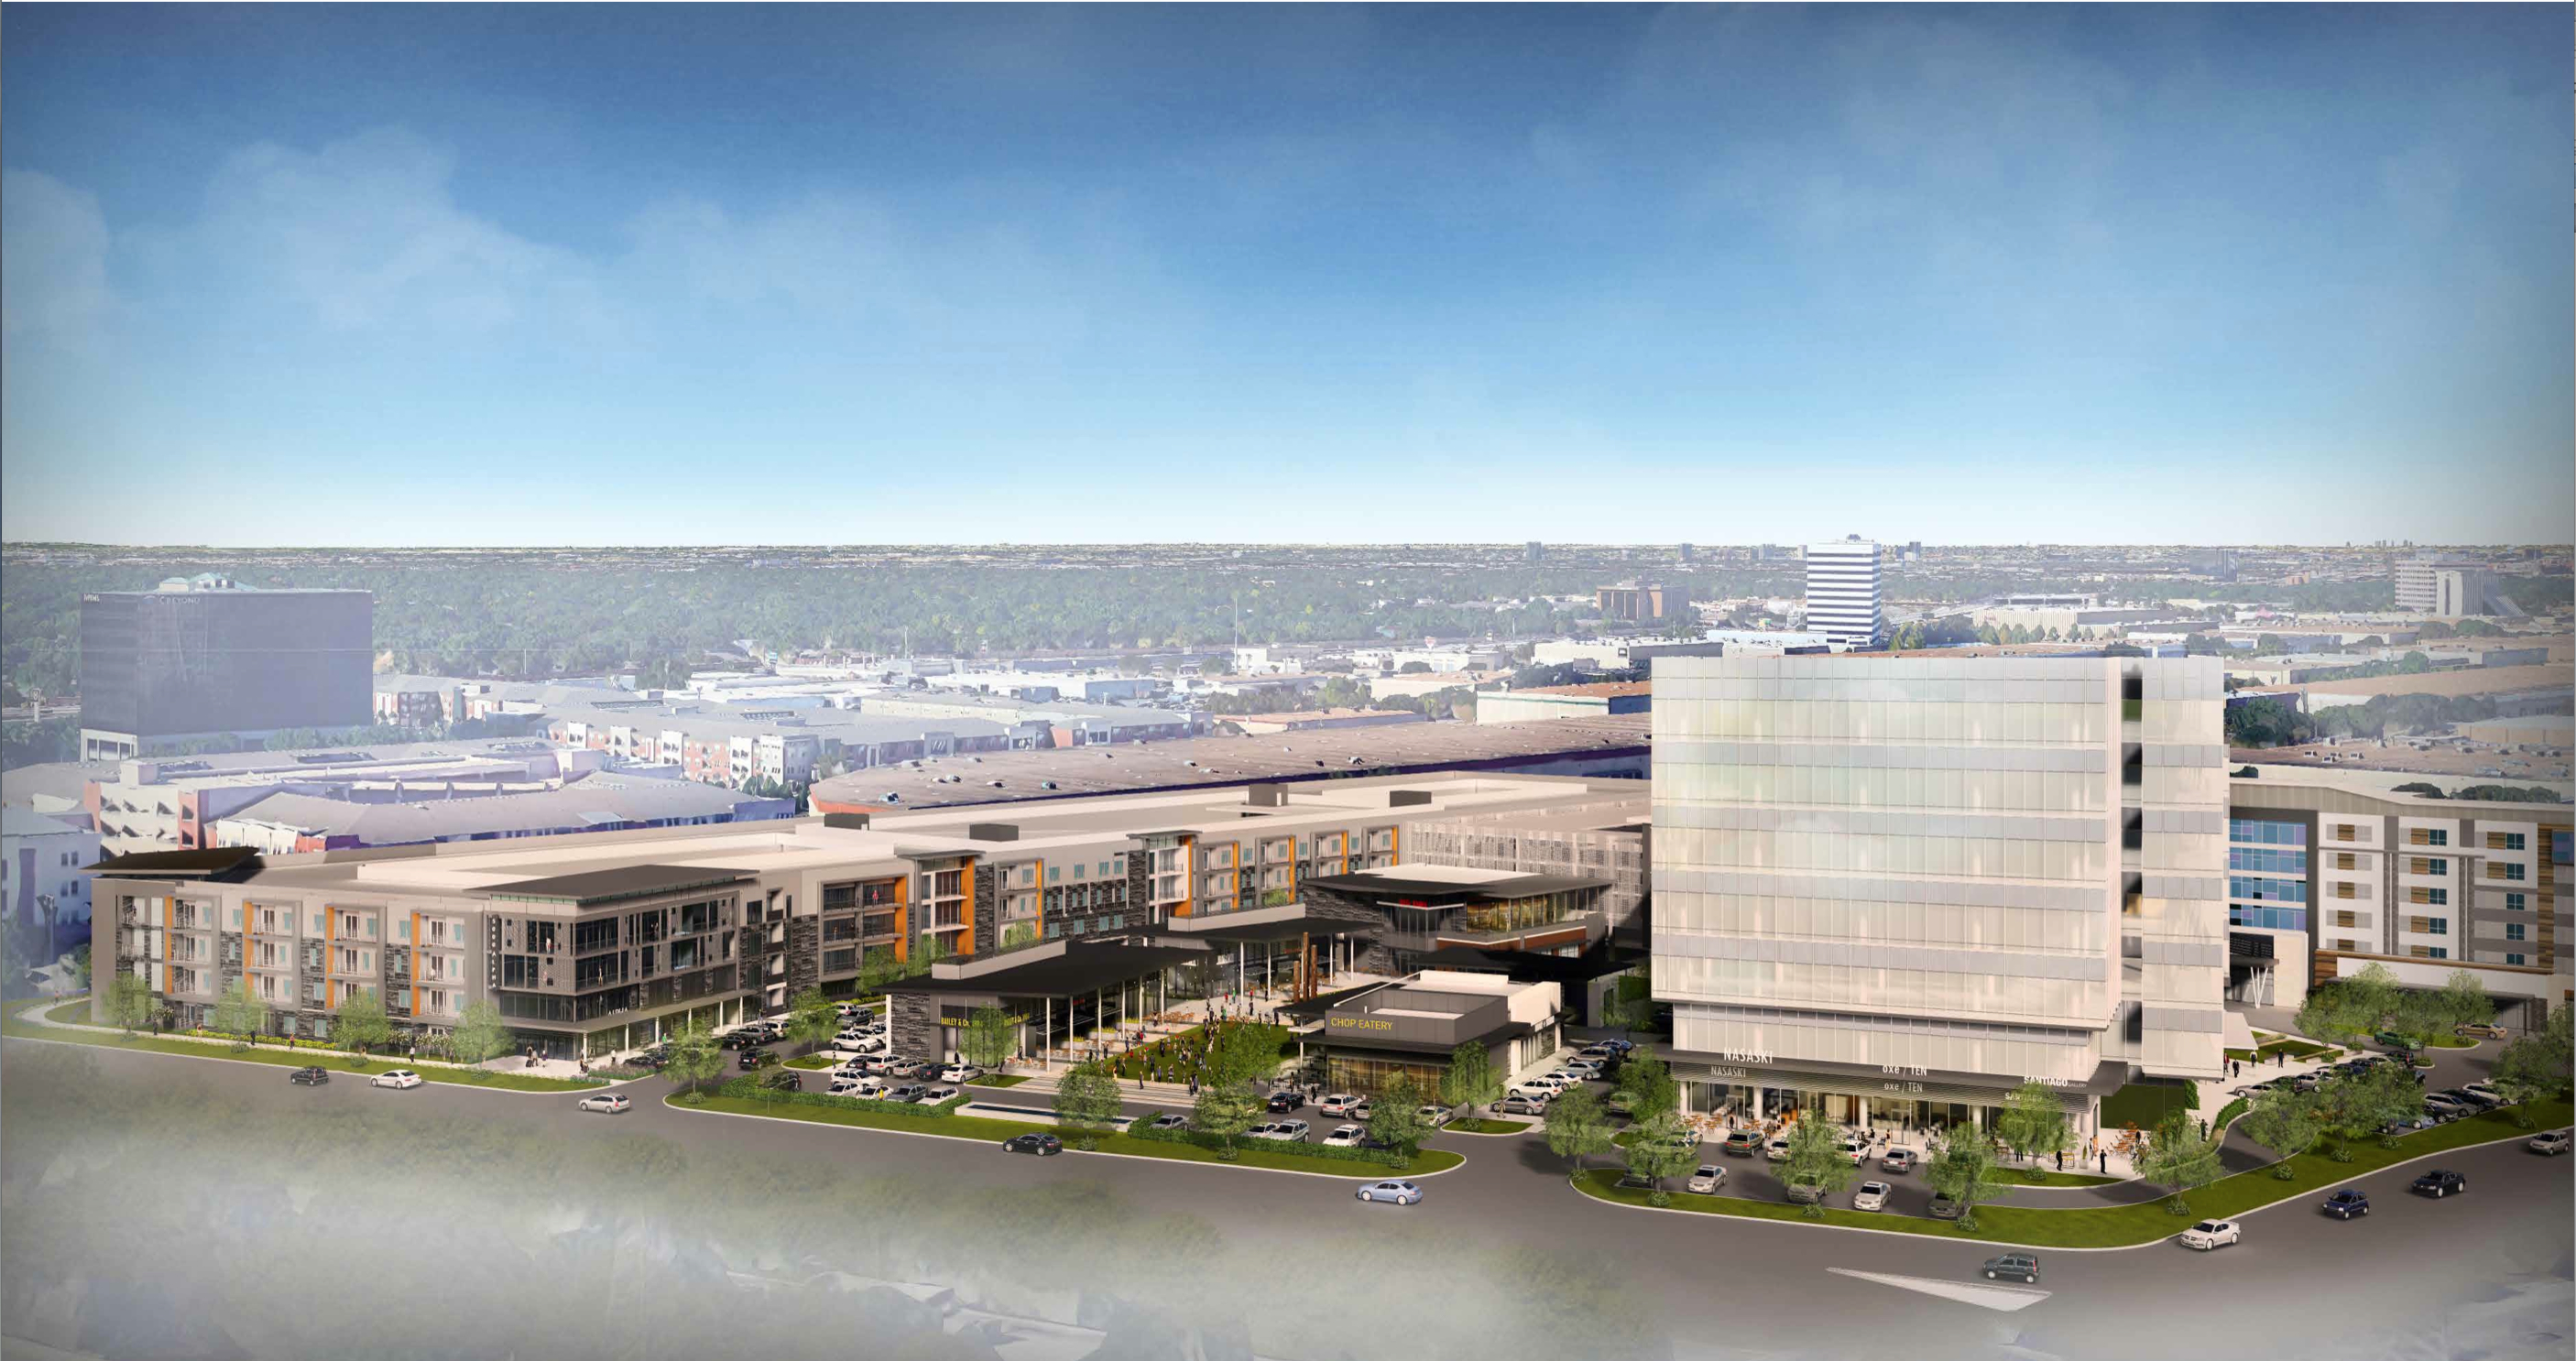 Investors pump $16 million into new mixed-use project near